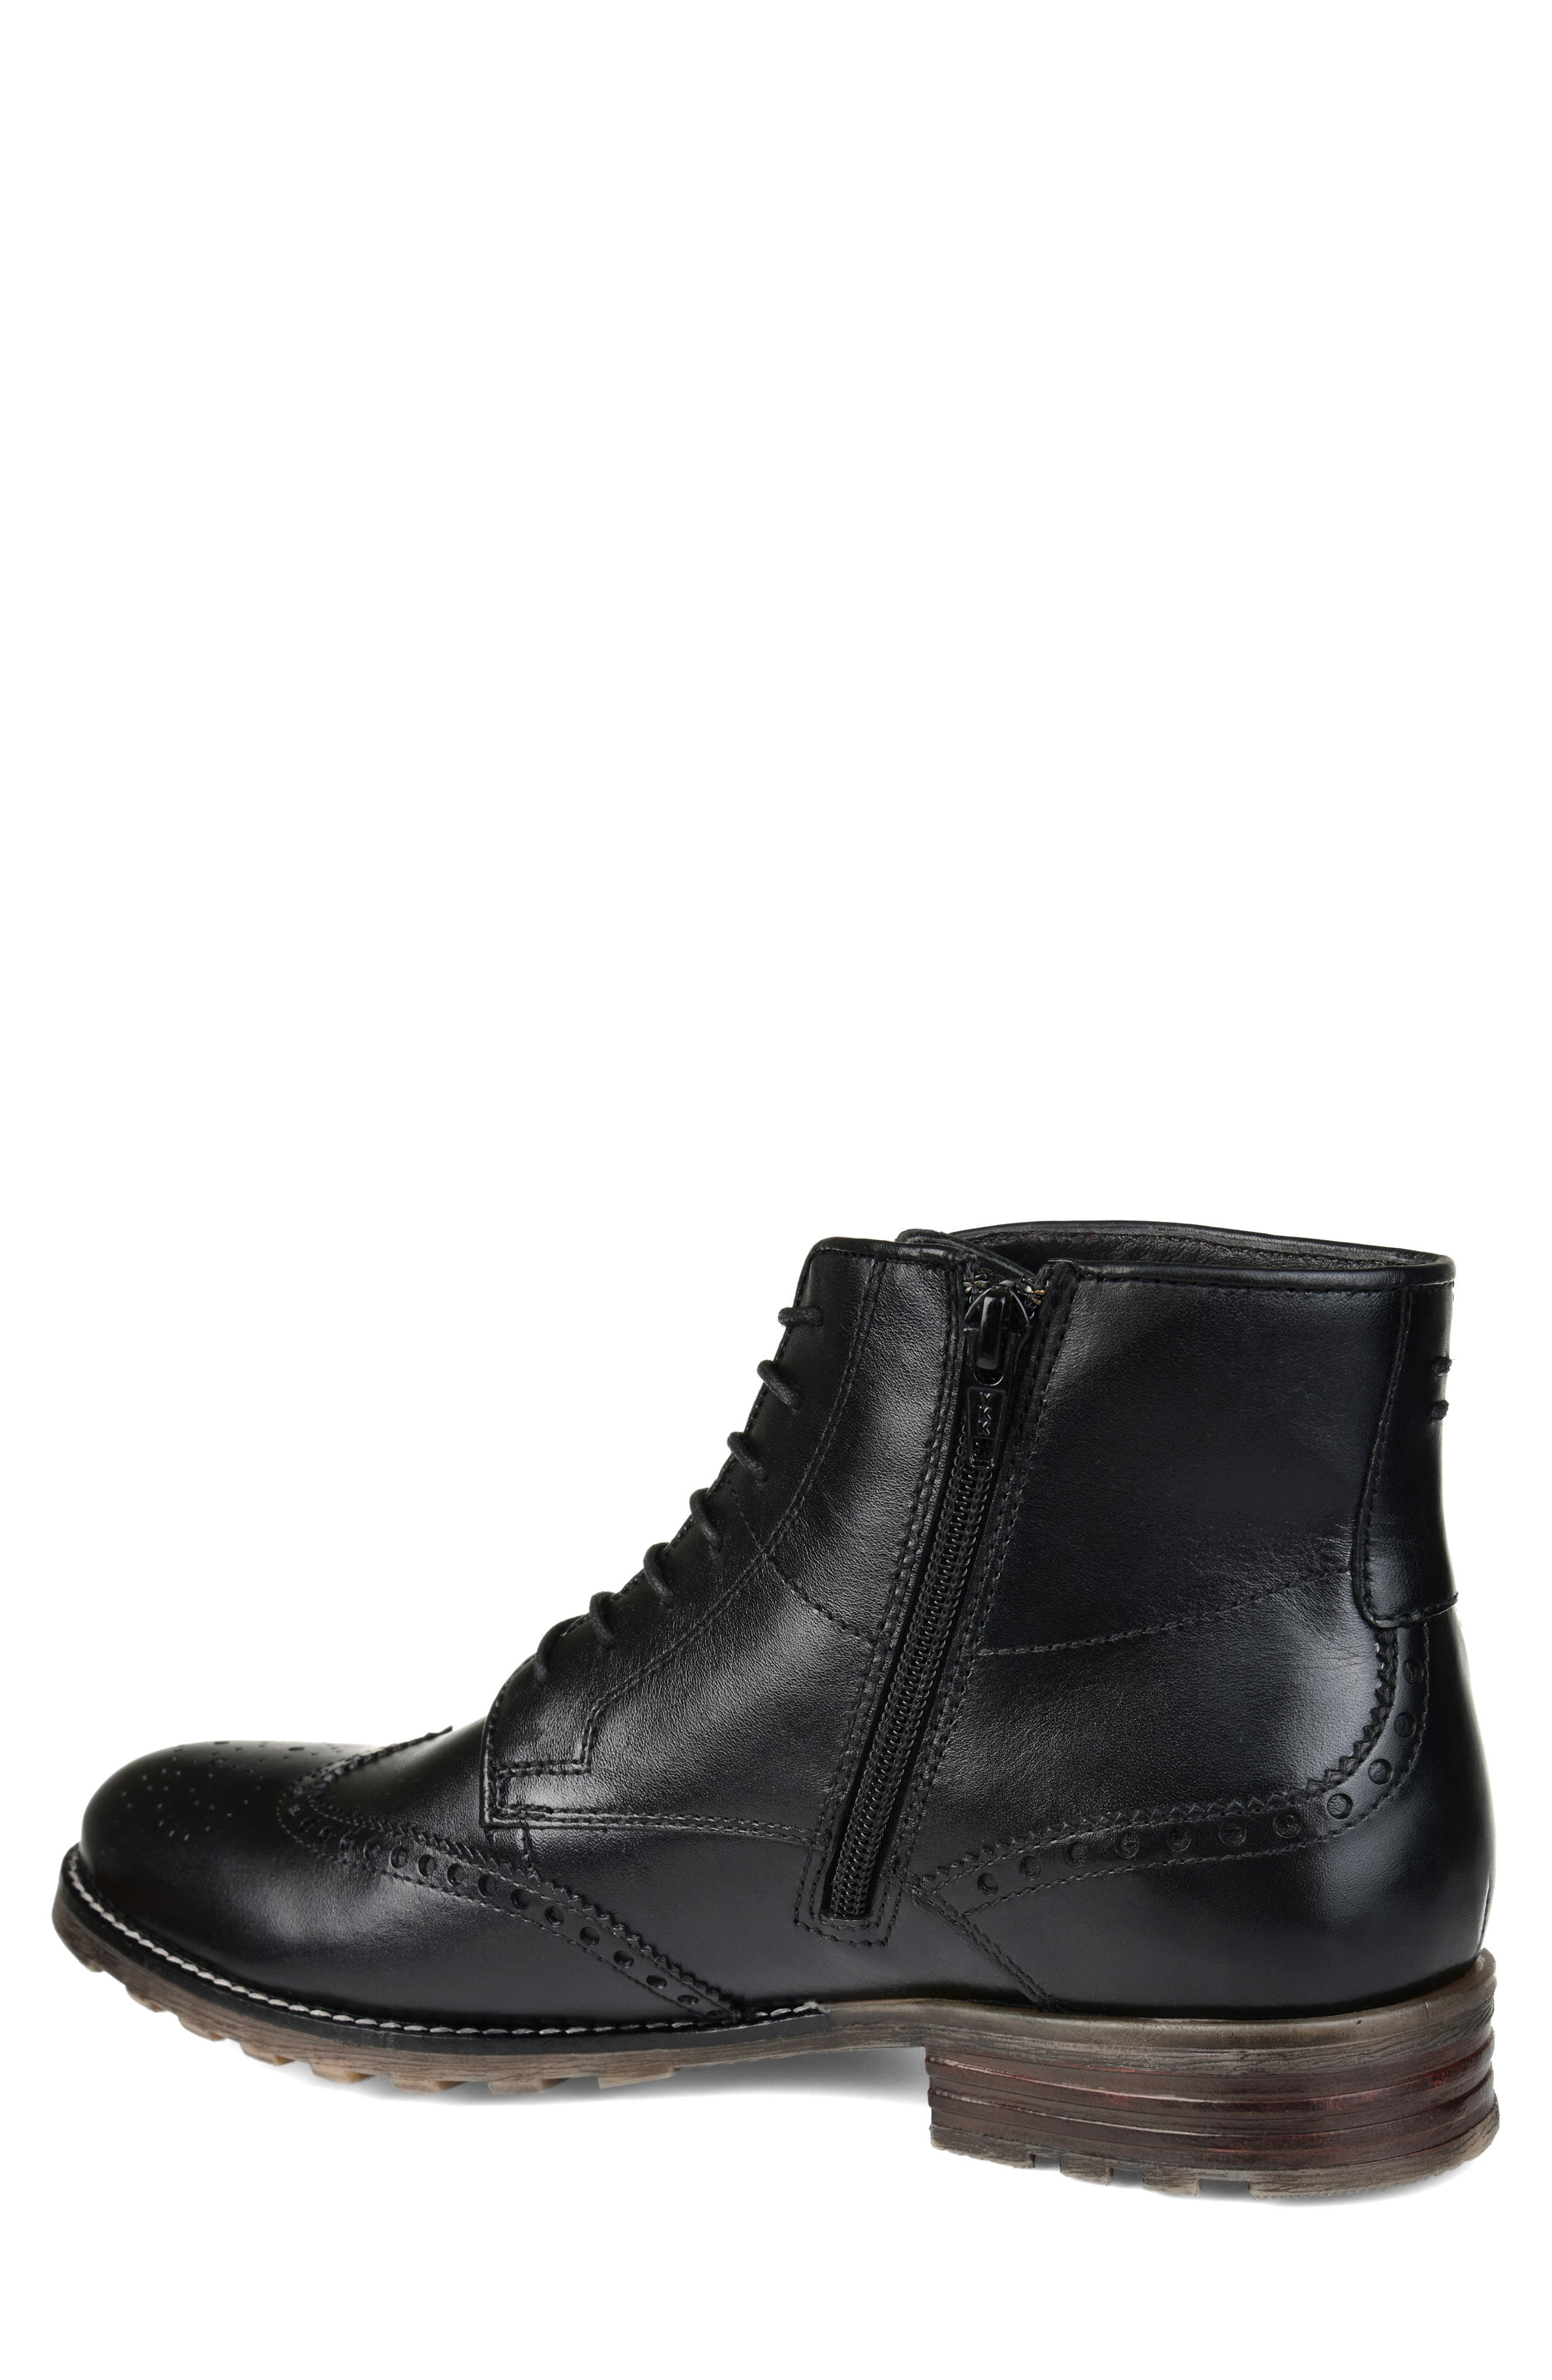 THOMAS AND VINE, Ryker Wingtip Boot, Alternate thumbnail 2, color, BLACK LEATHER